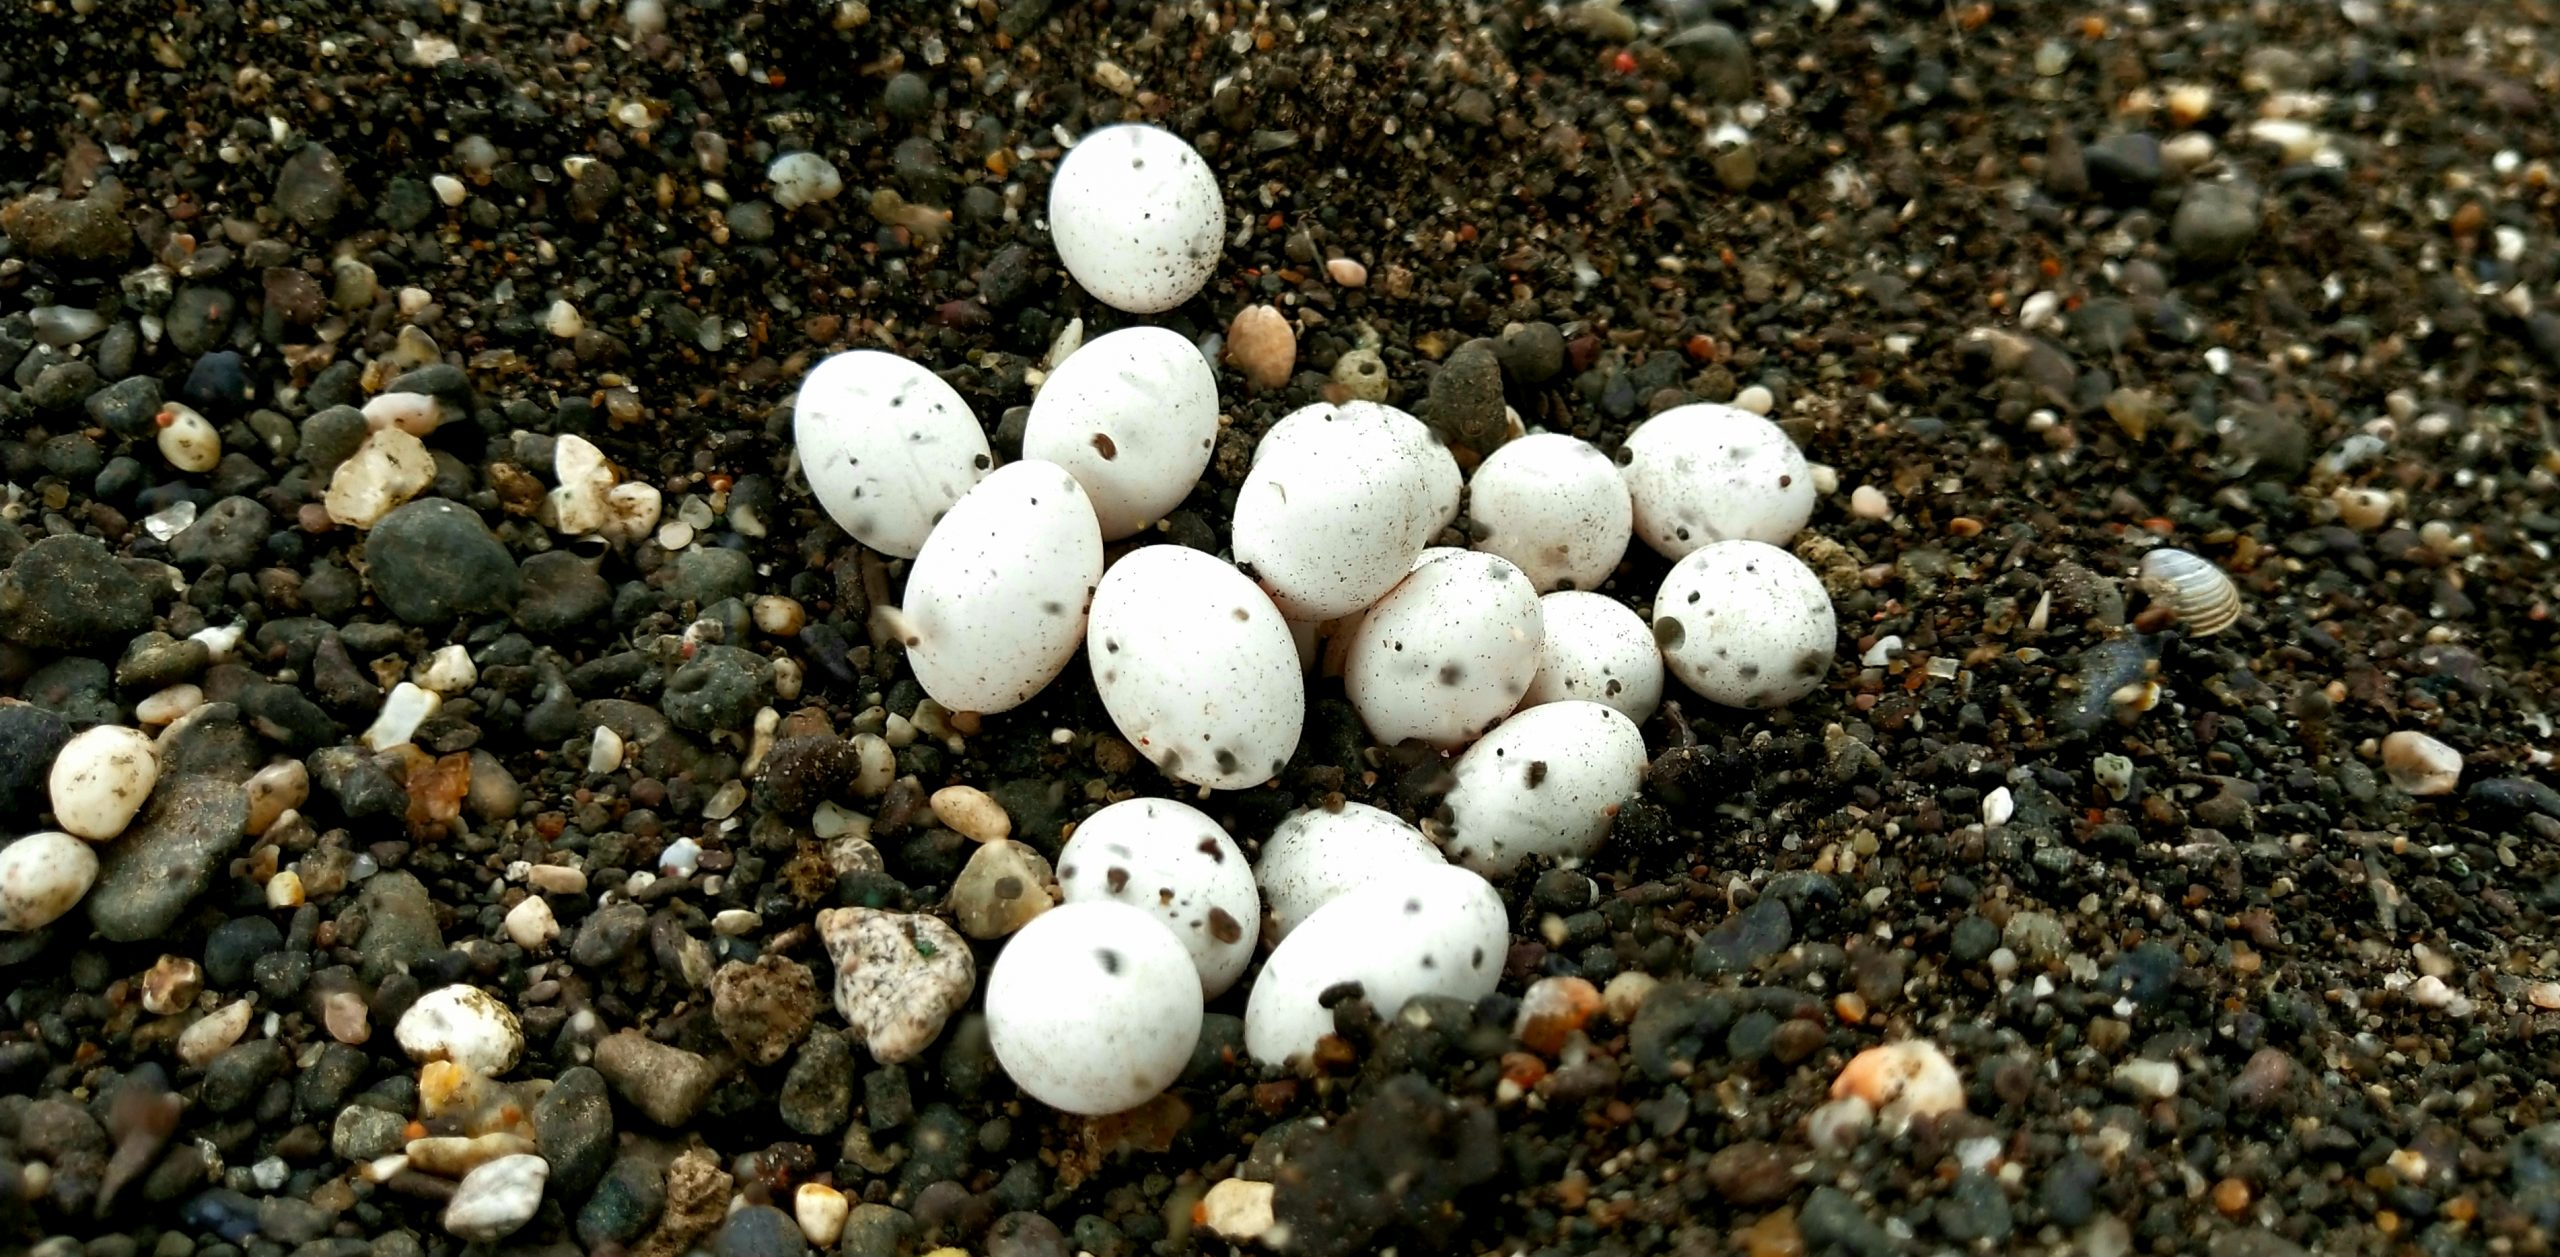 Eggs on soil